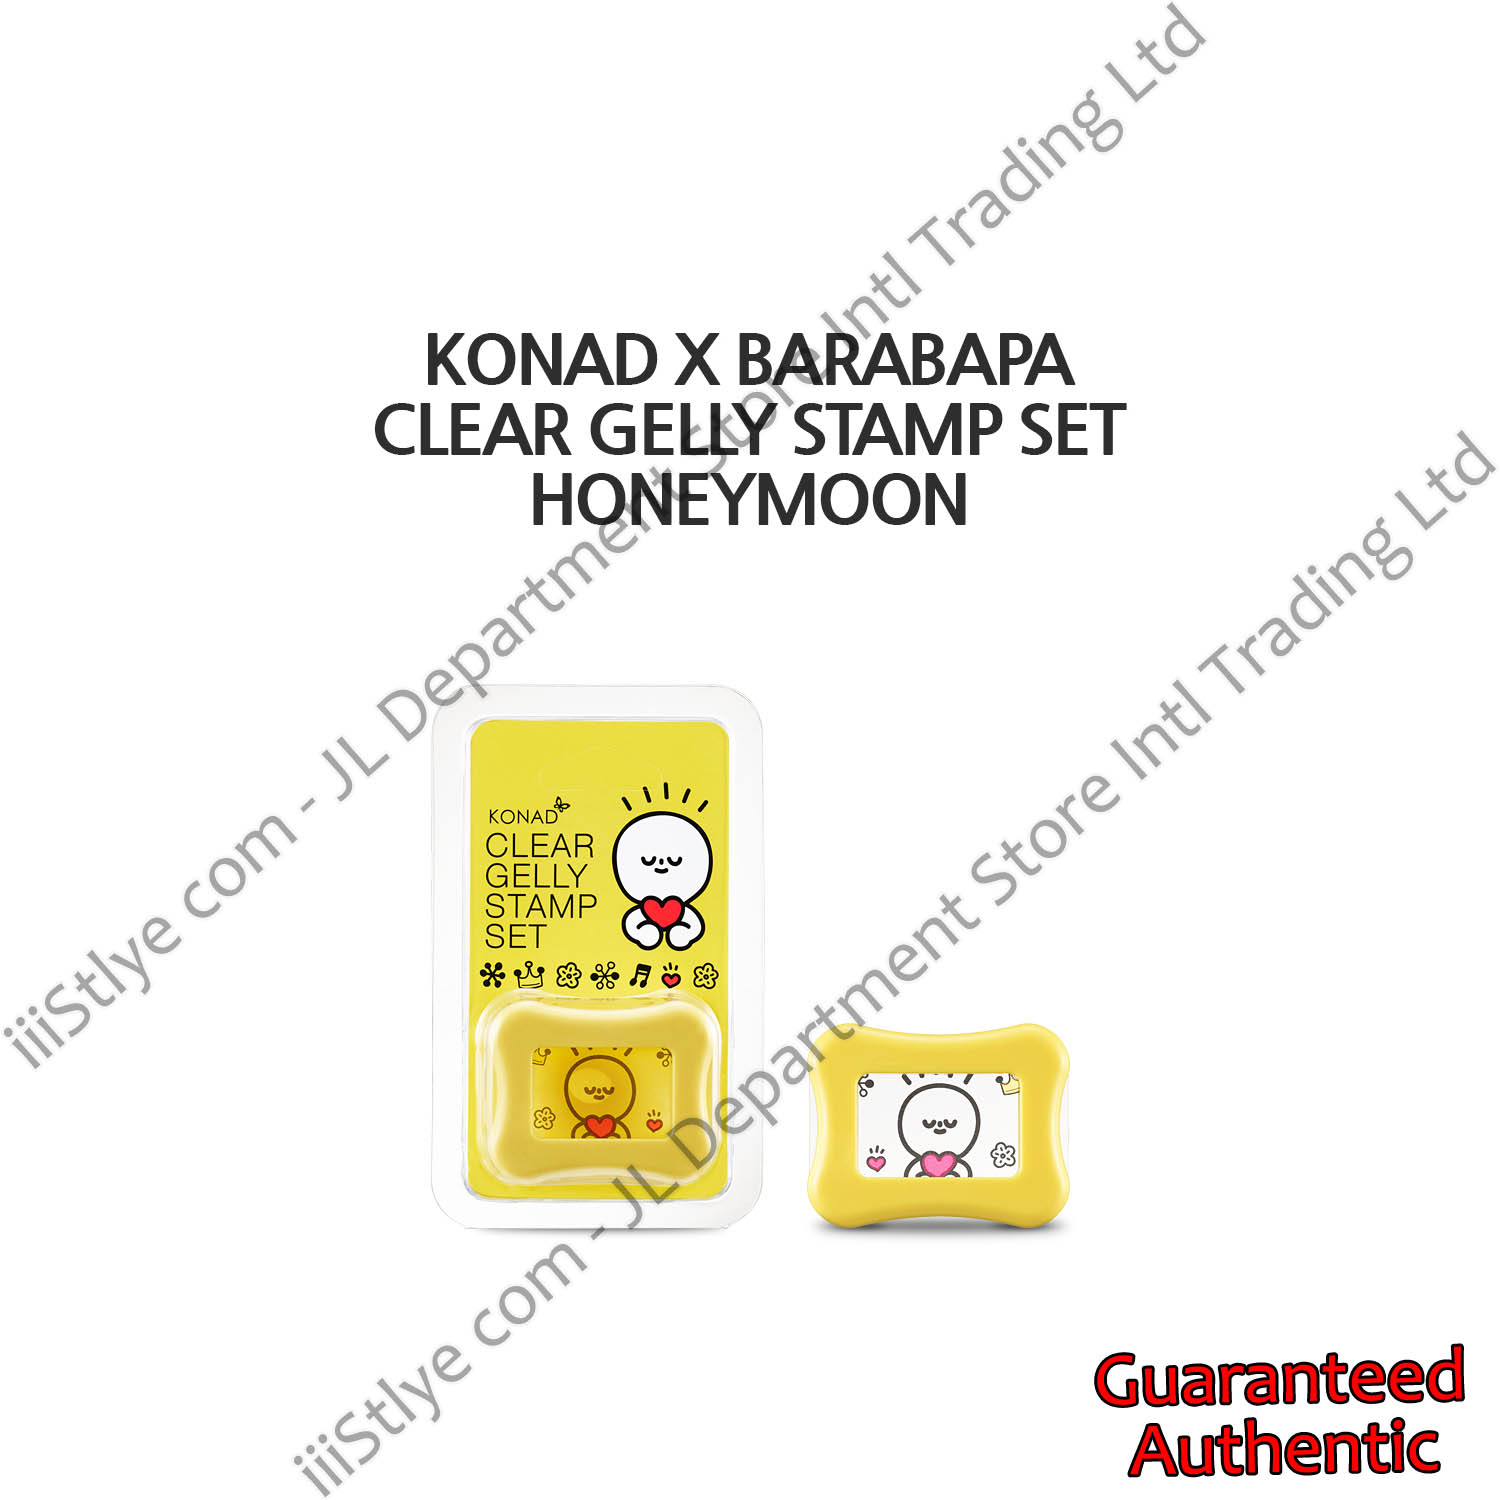 konadXbarabapa clear gelly stamp set honeymoon